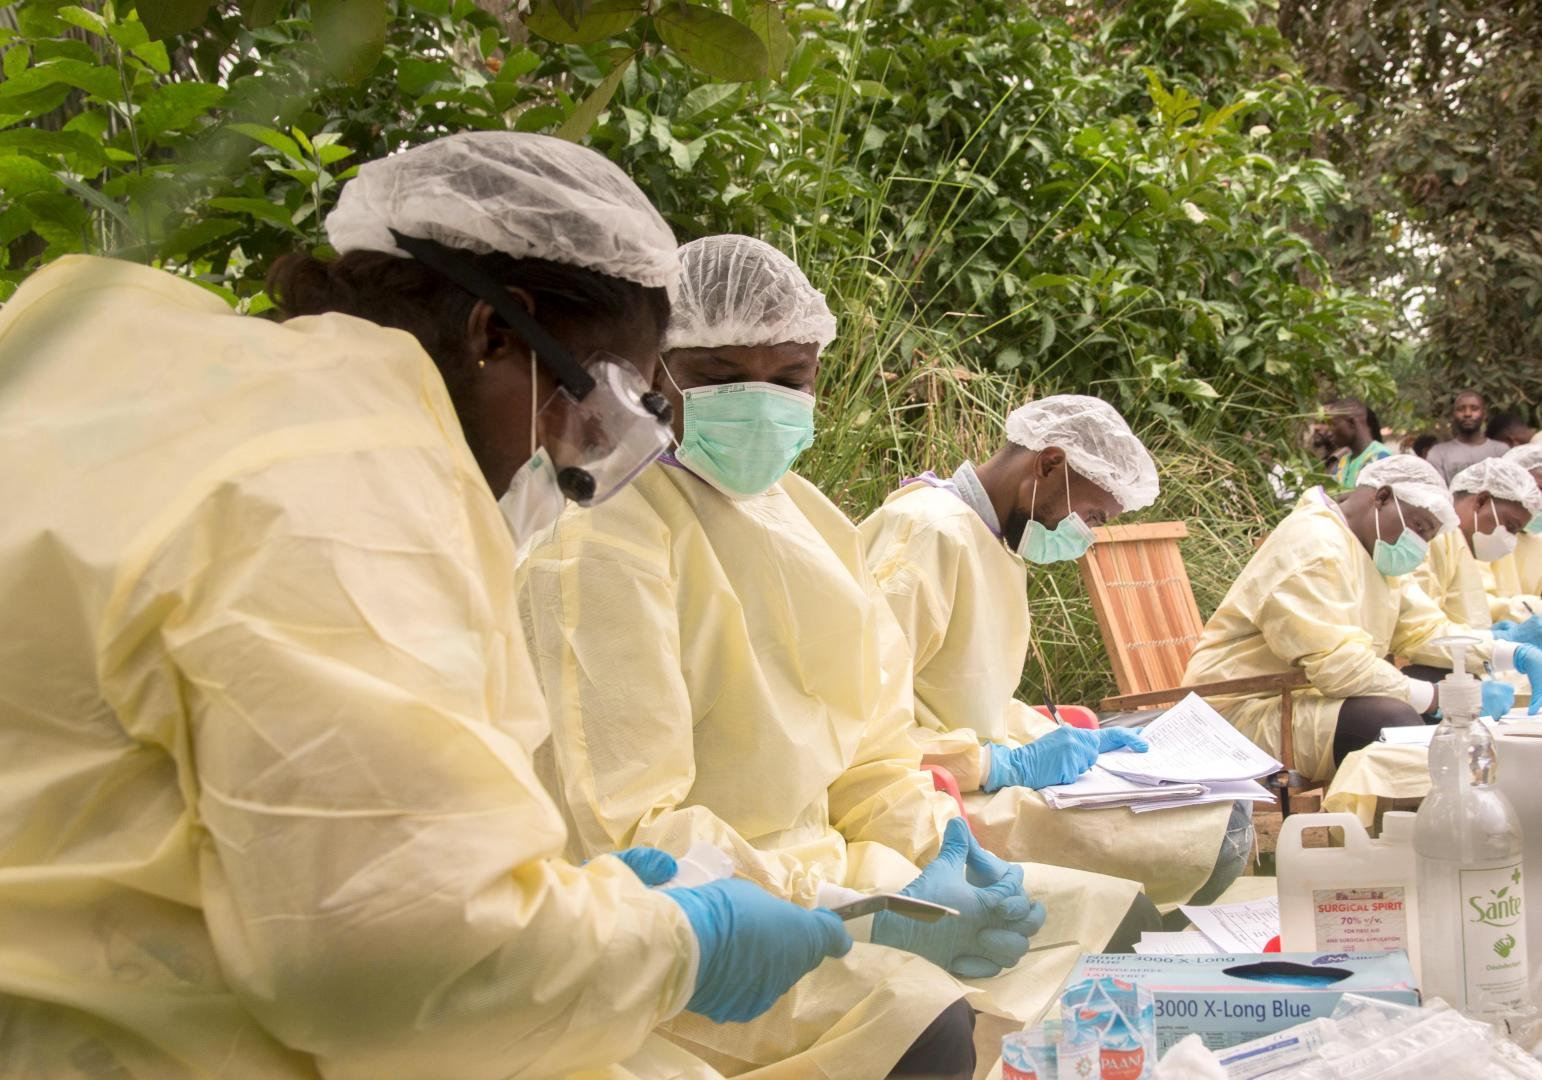 Democratic Republic of the Congo Ebola cases rise, surpass previous outbreak